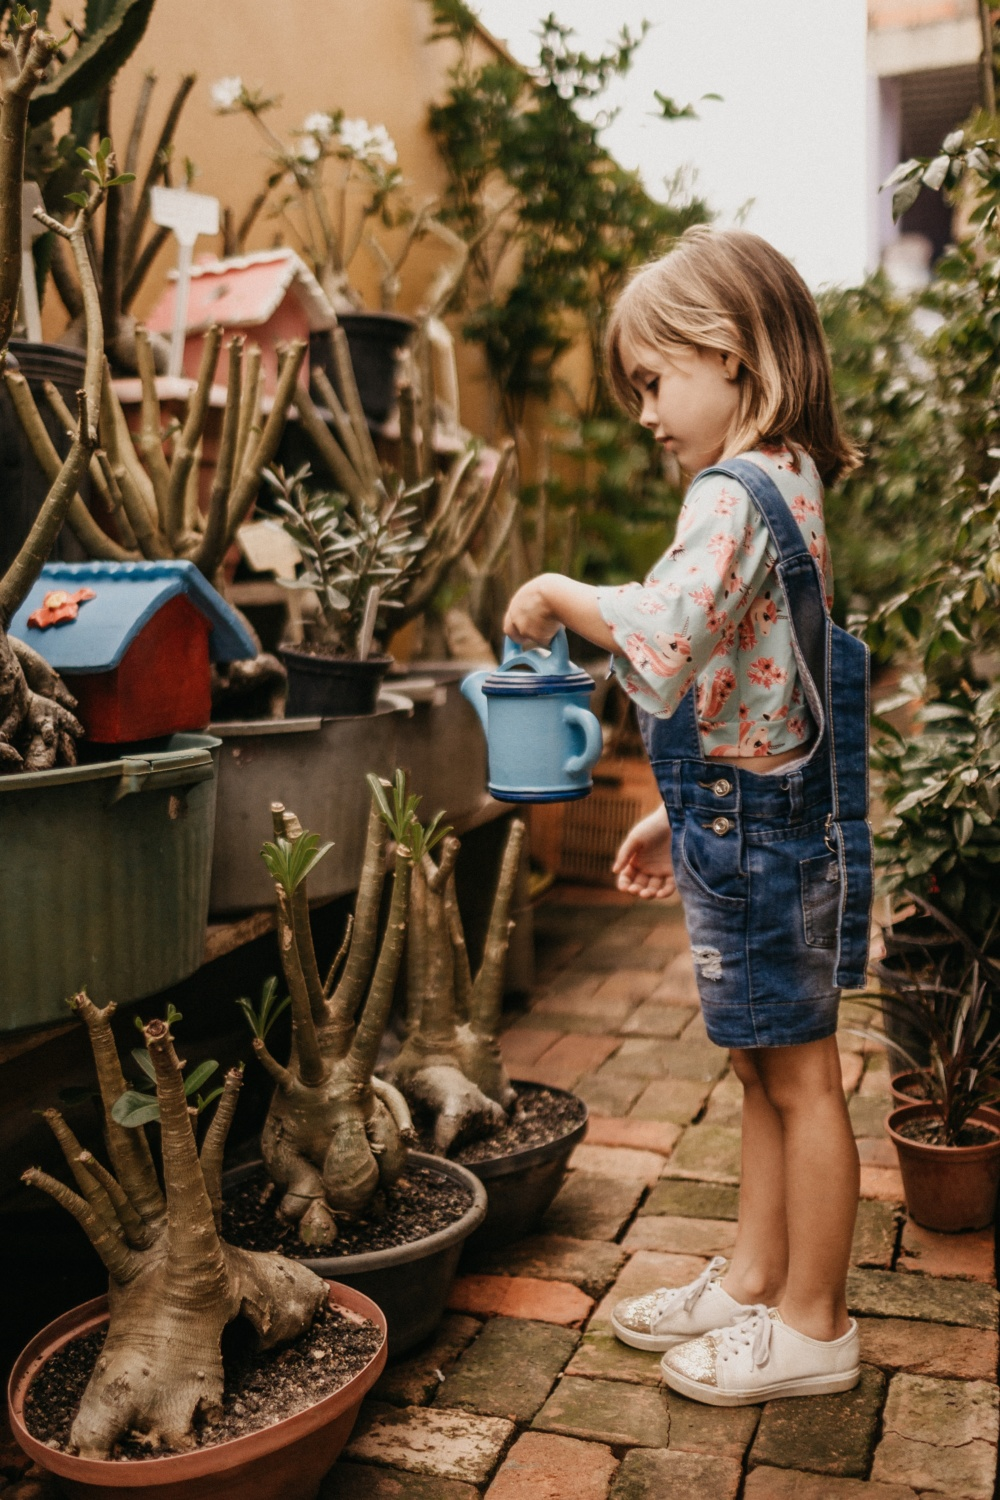 girl gardening - Gardening as therapy by Garden Escape